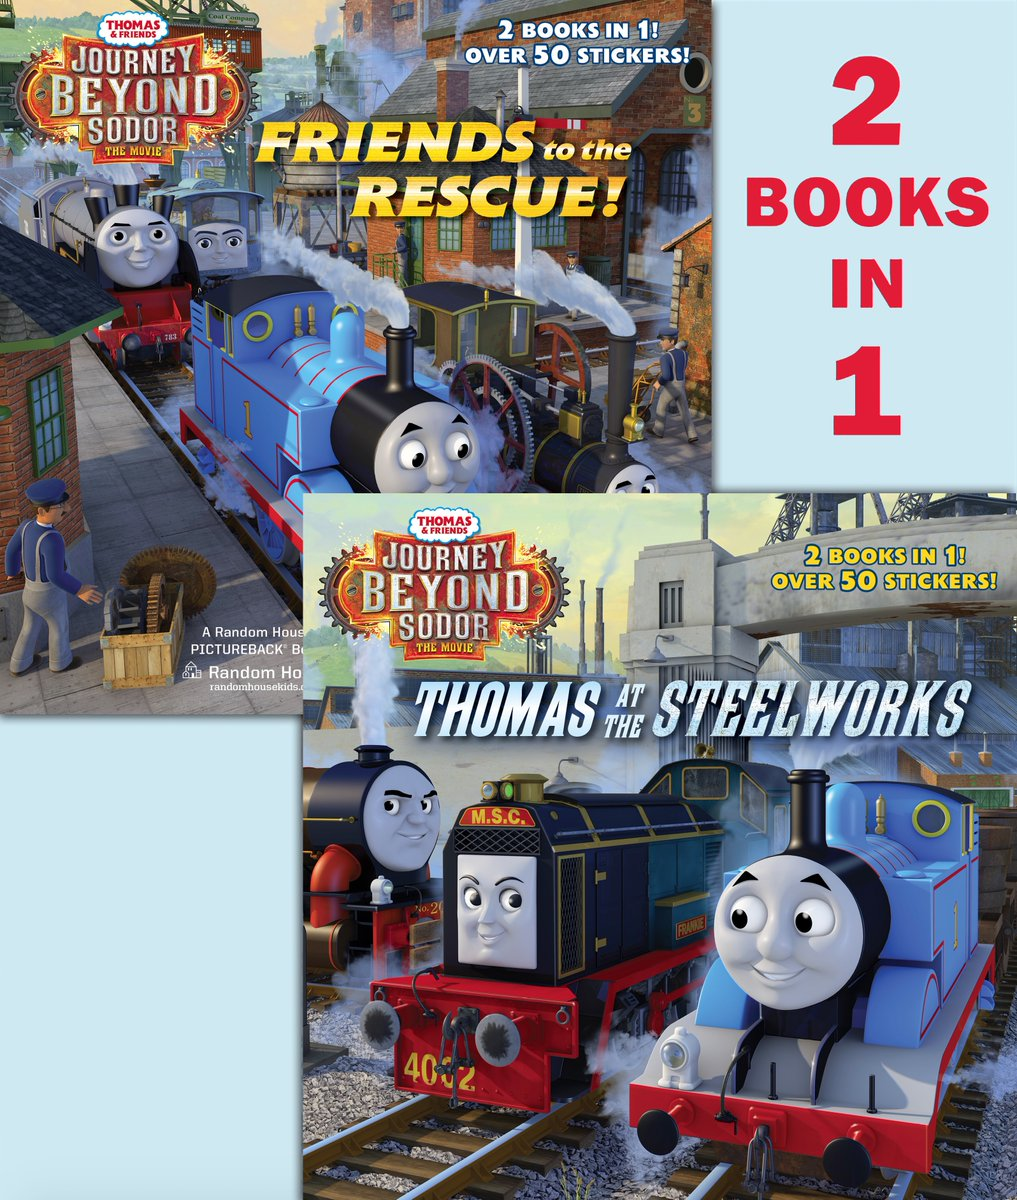 thomas the tank engine face template.html